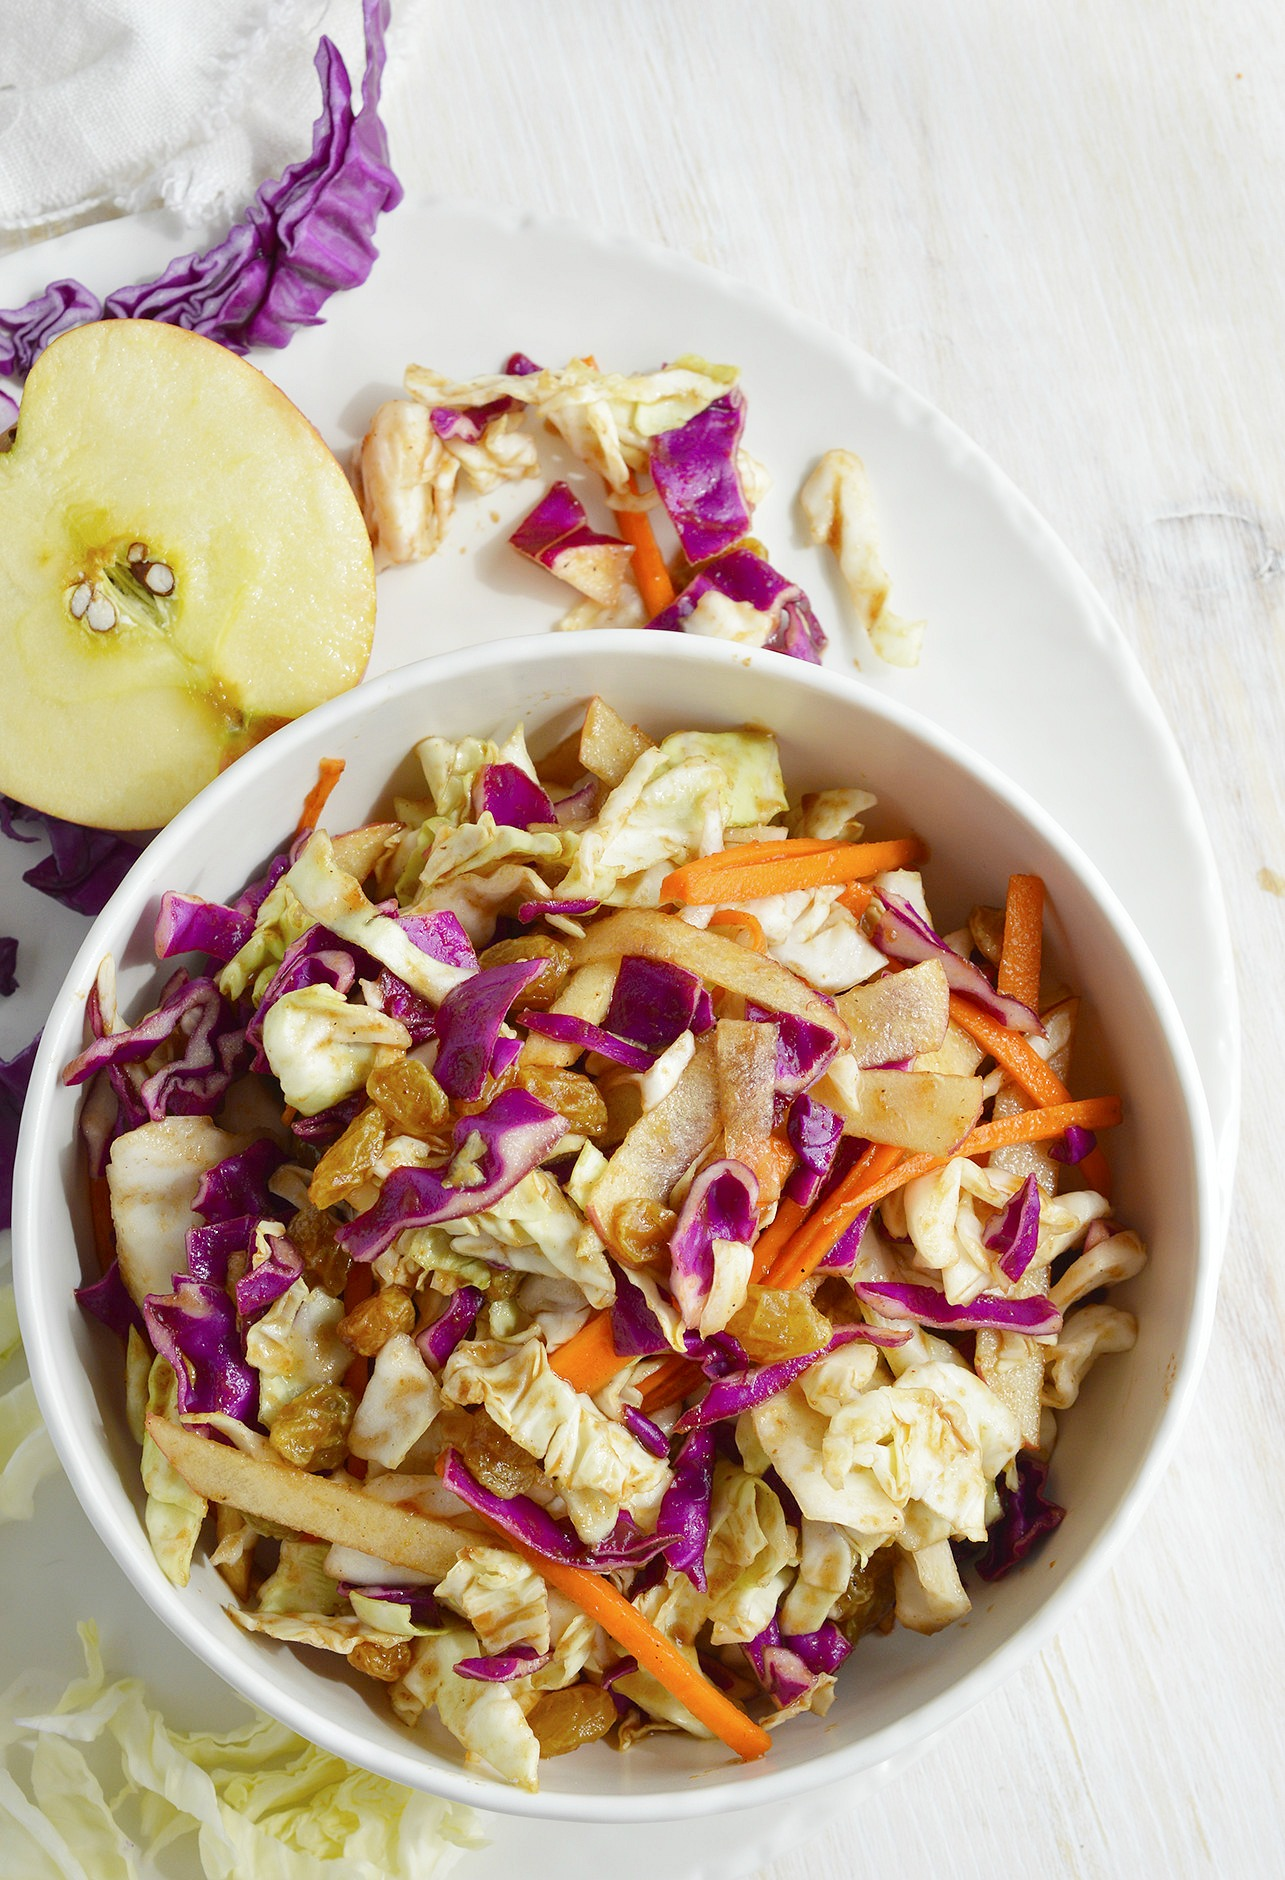 Try a unique twist on your favorite barbecue side dish. Instead of plain coleslaw make this Sweet and Savory Cabbage Apple Slaw! Red and green cabbage, carrots, apples, golden raisins tossed with a tangy apple vinegar dressing.